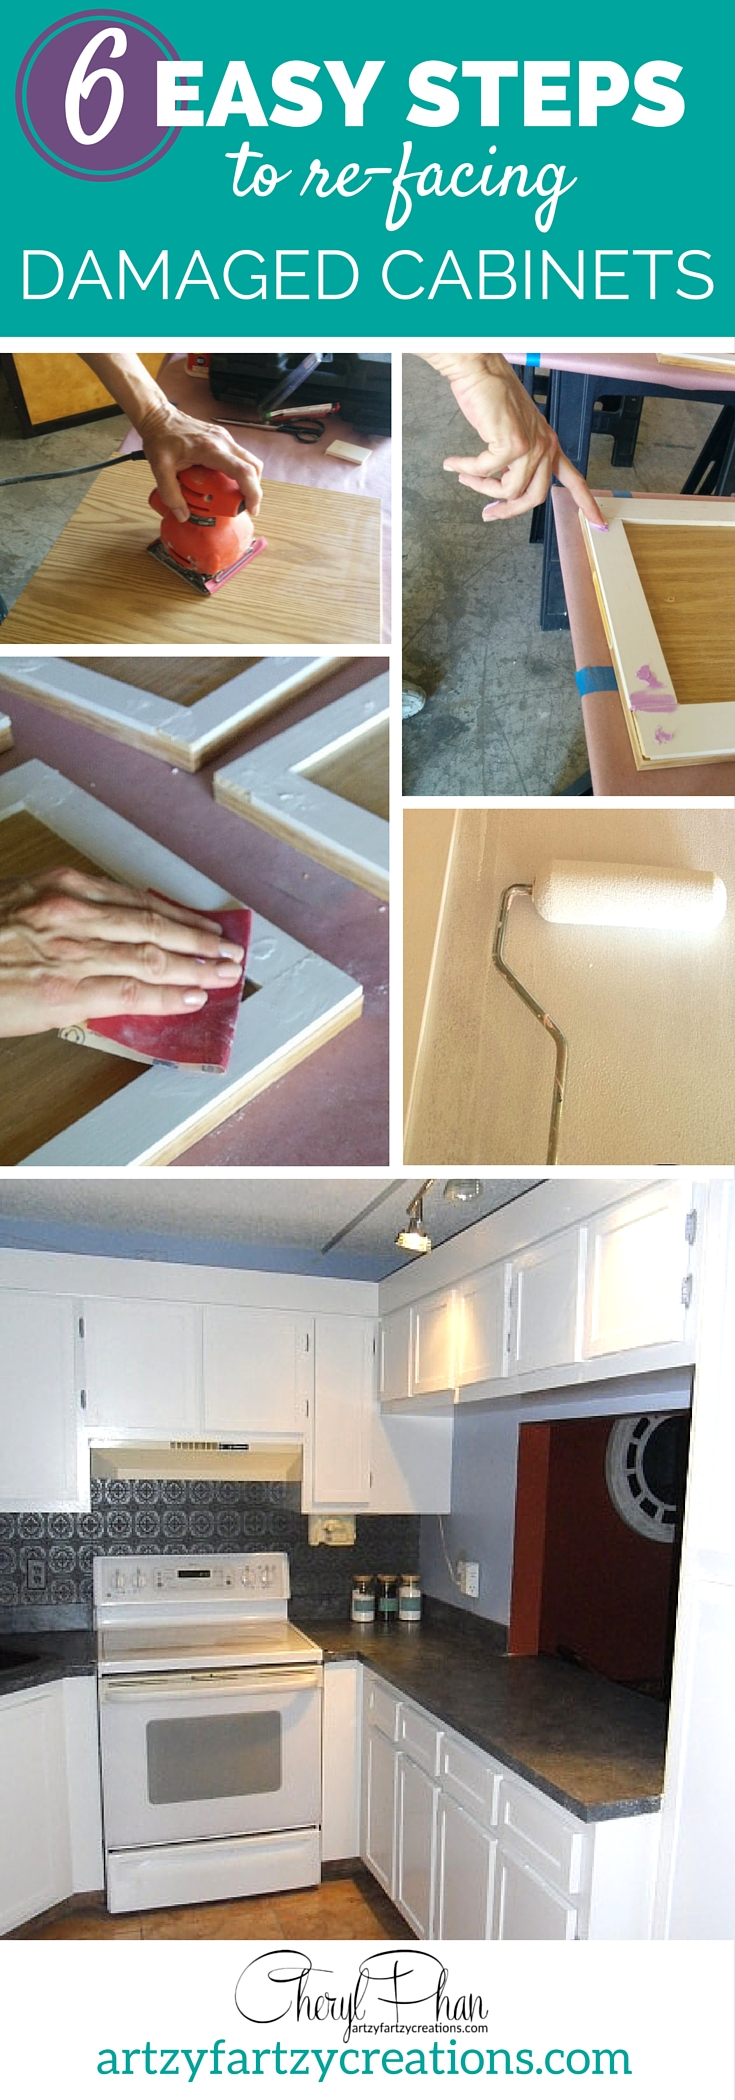 Pin it: 6 easy steps to refacing damaged cabinets